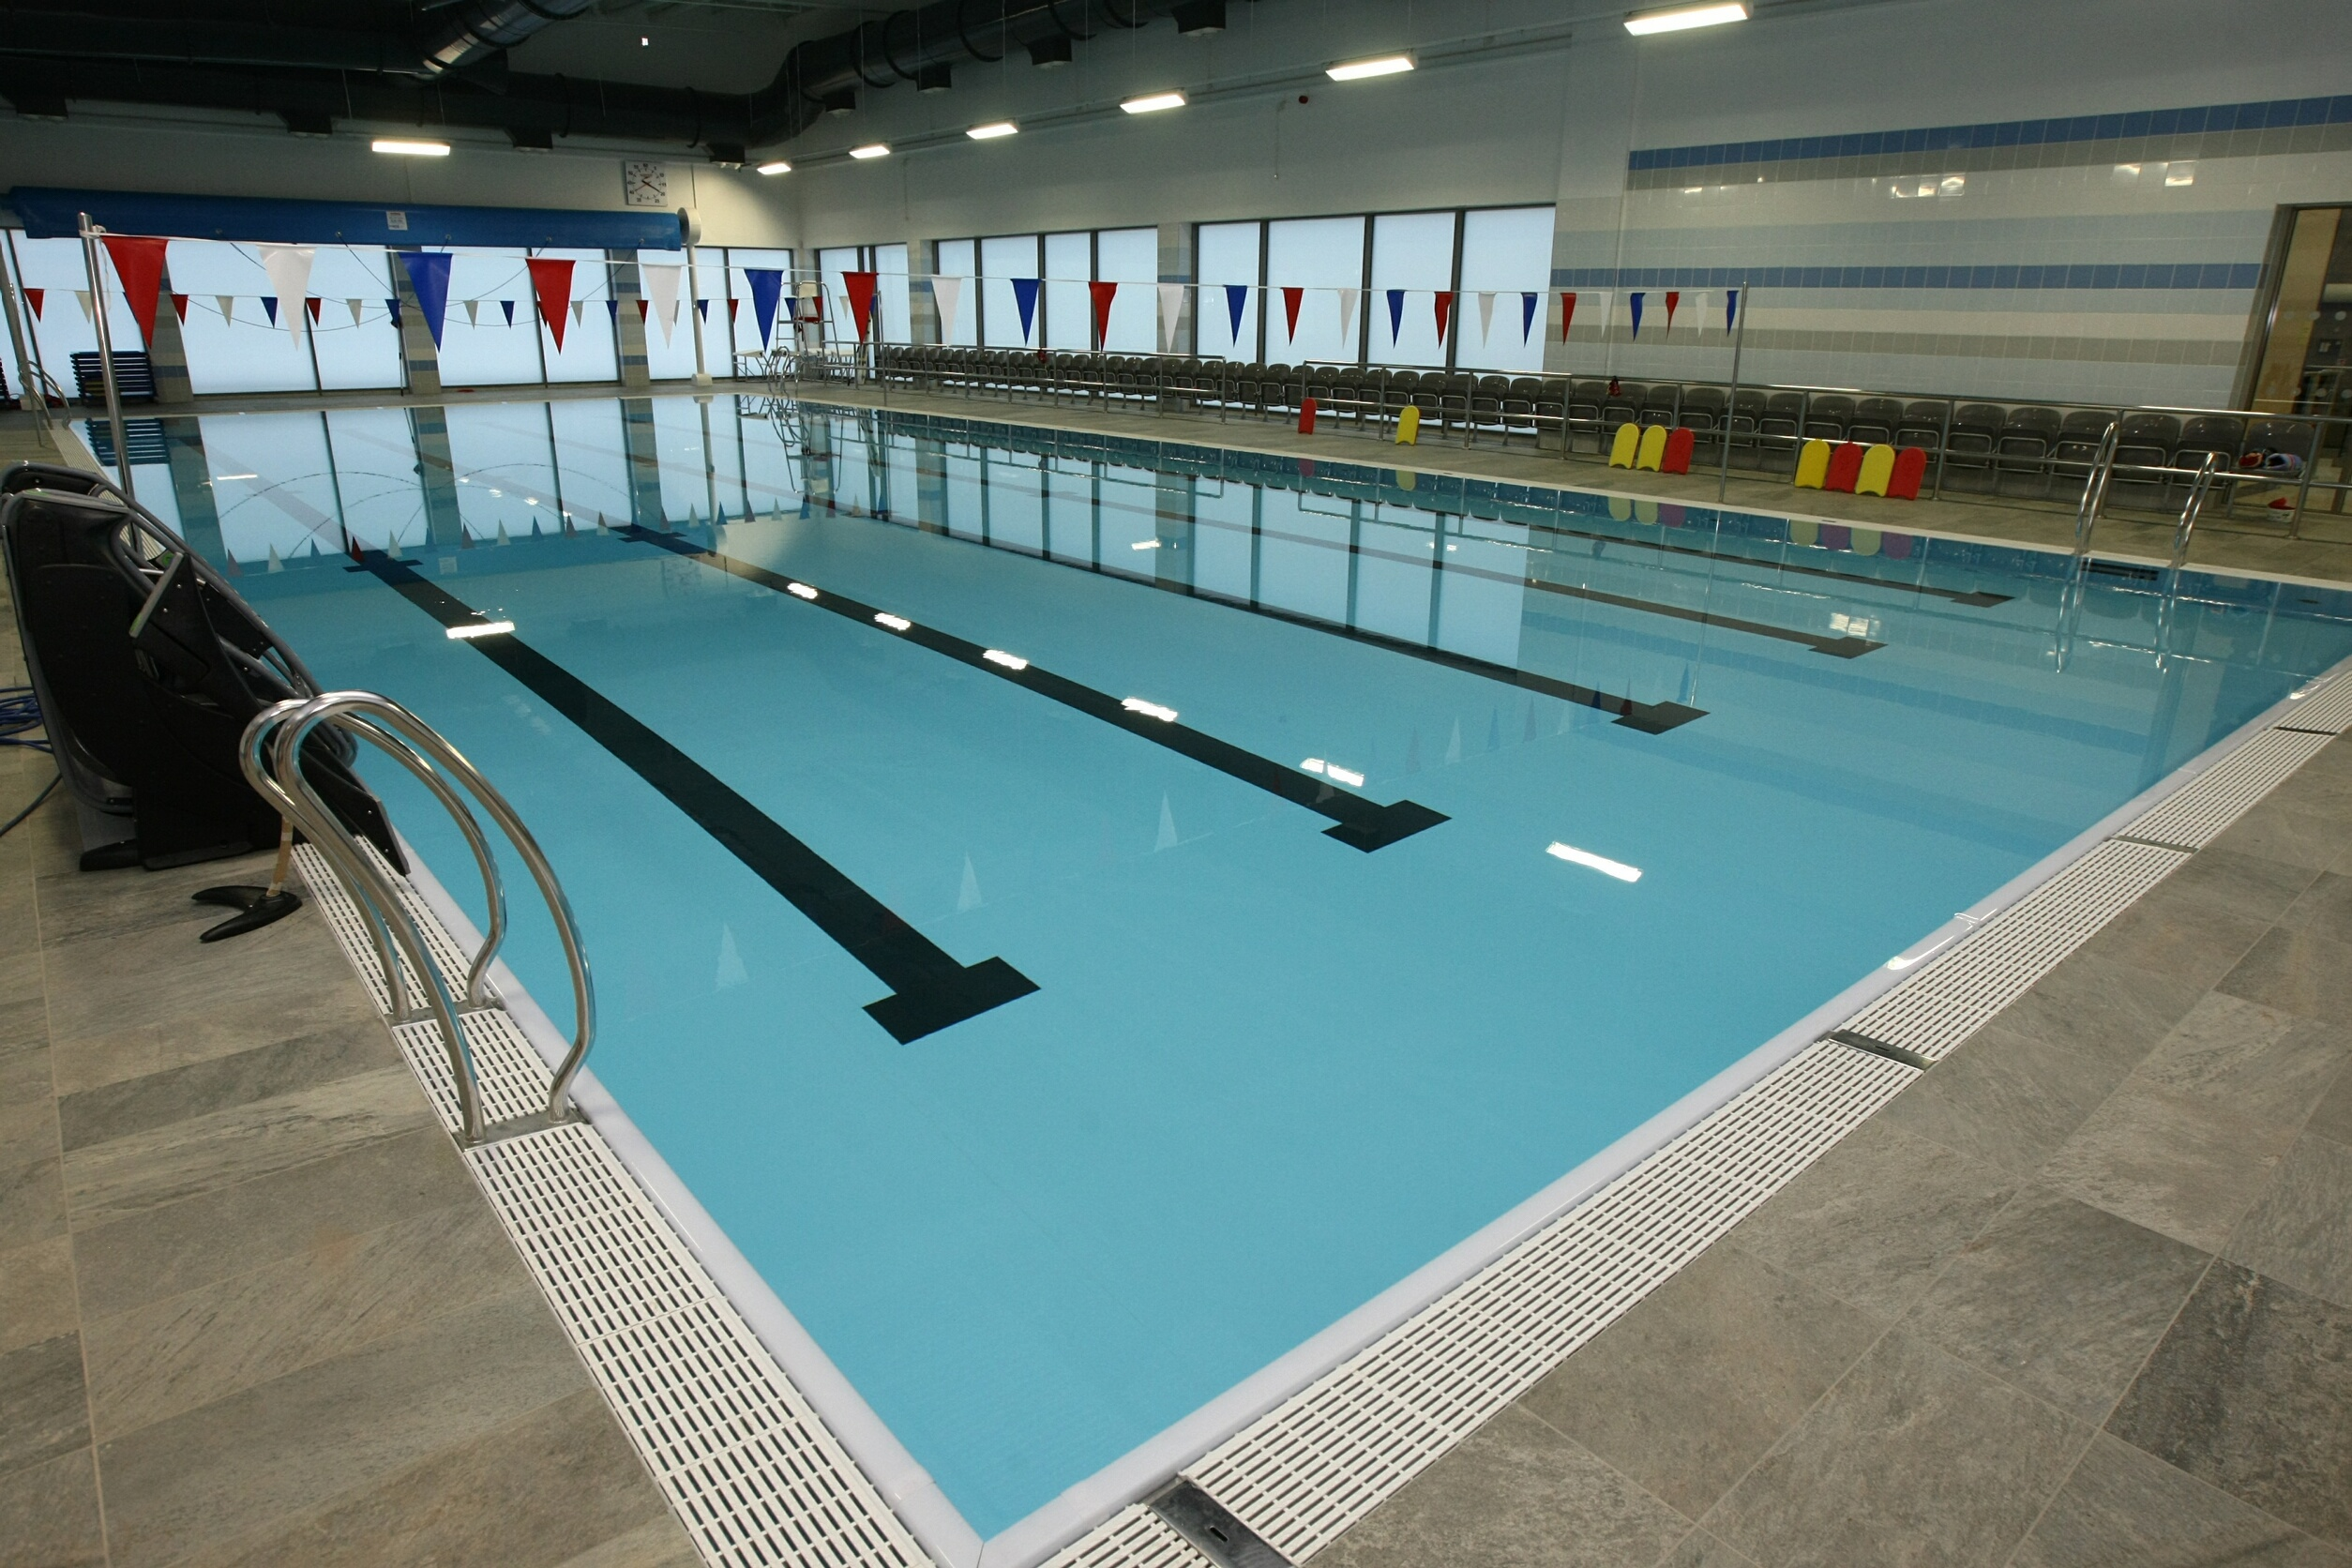 Brechin community campus swimming pool.